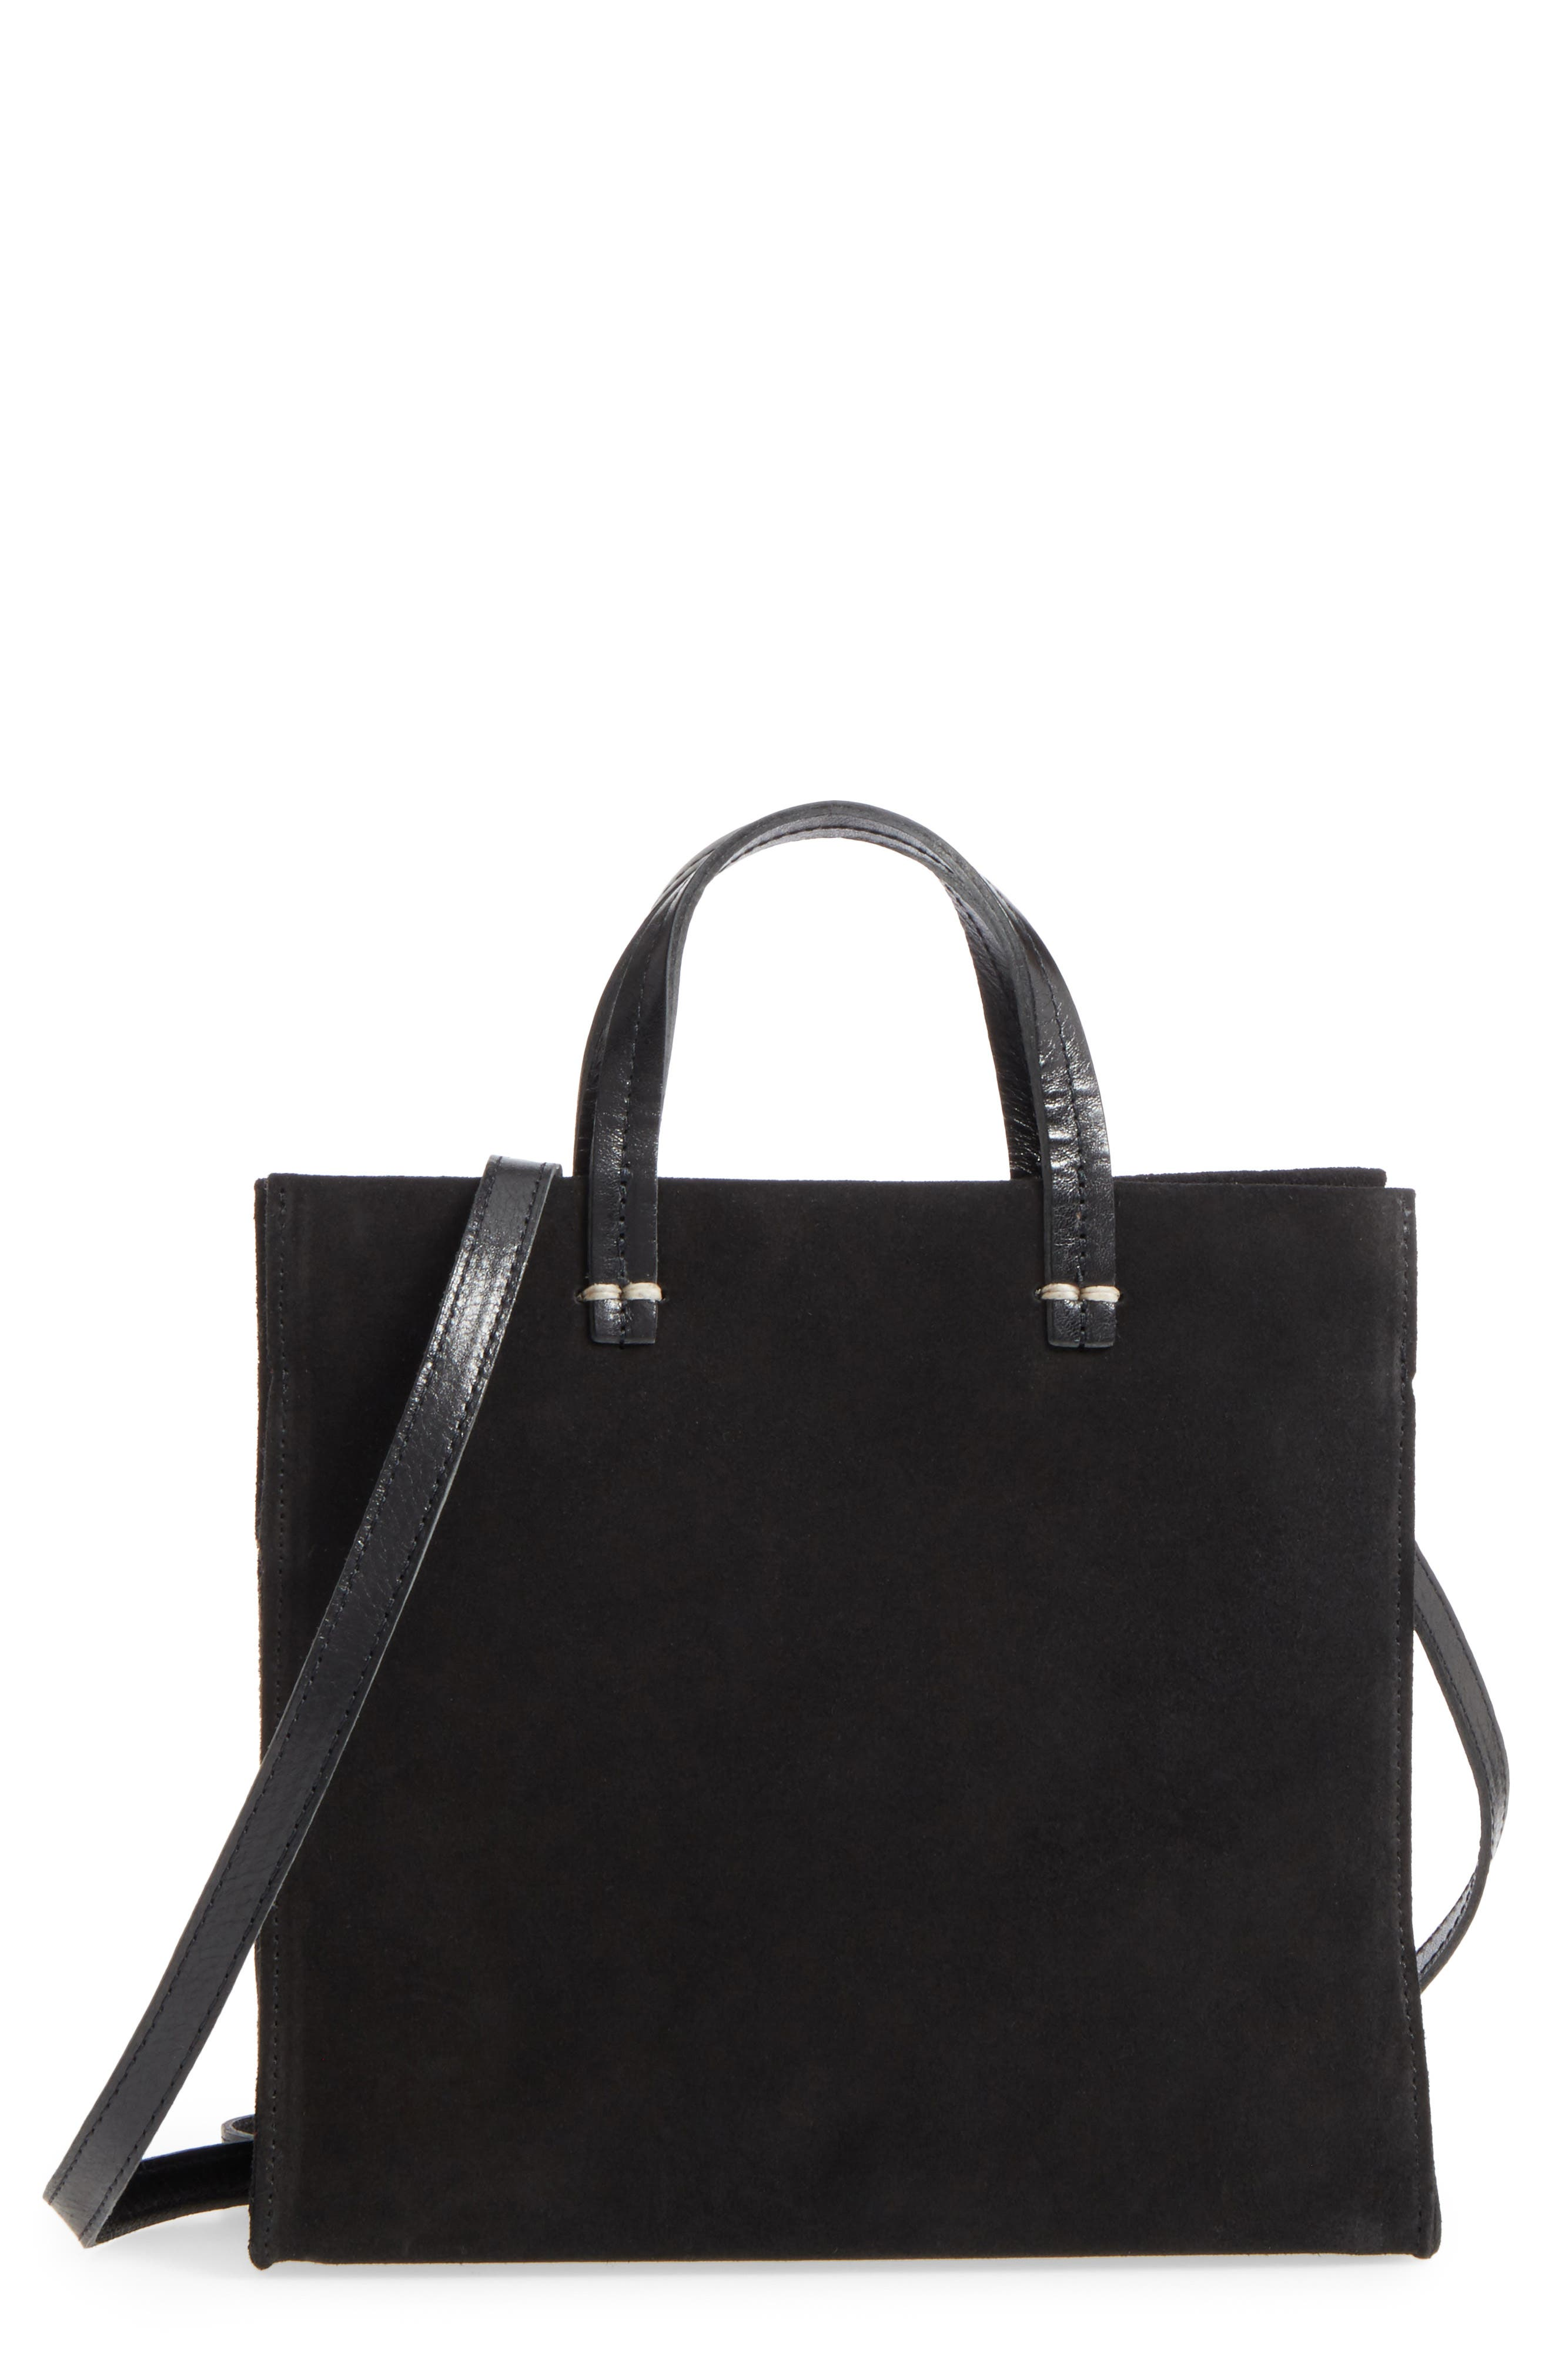 Clare V. Petit Simple Maison Suede Tote